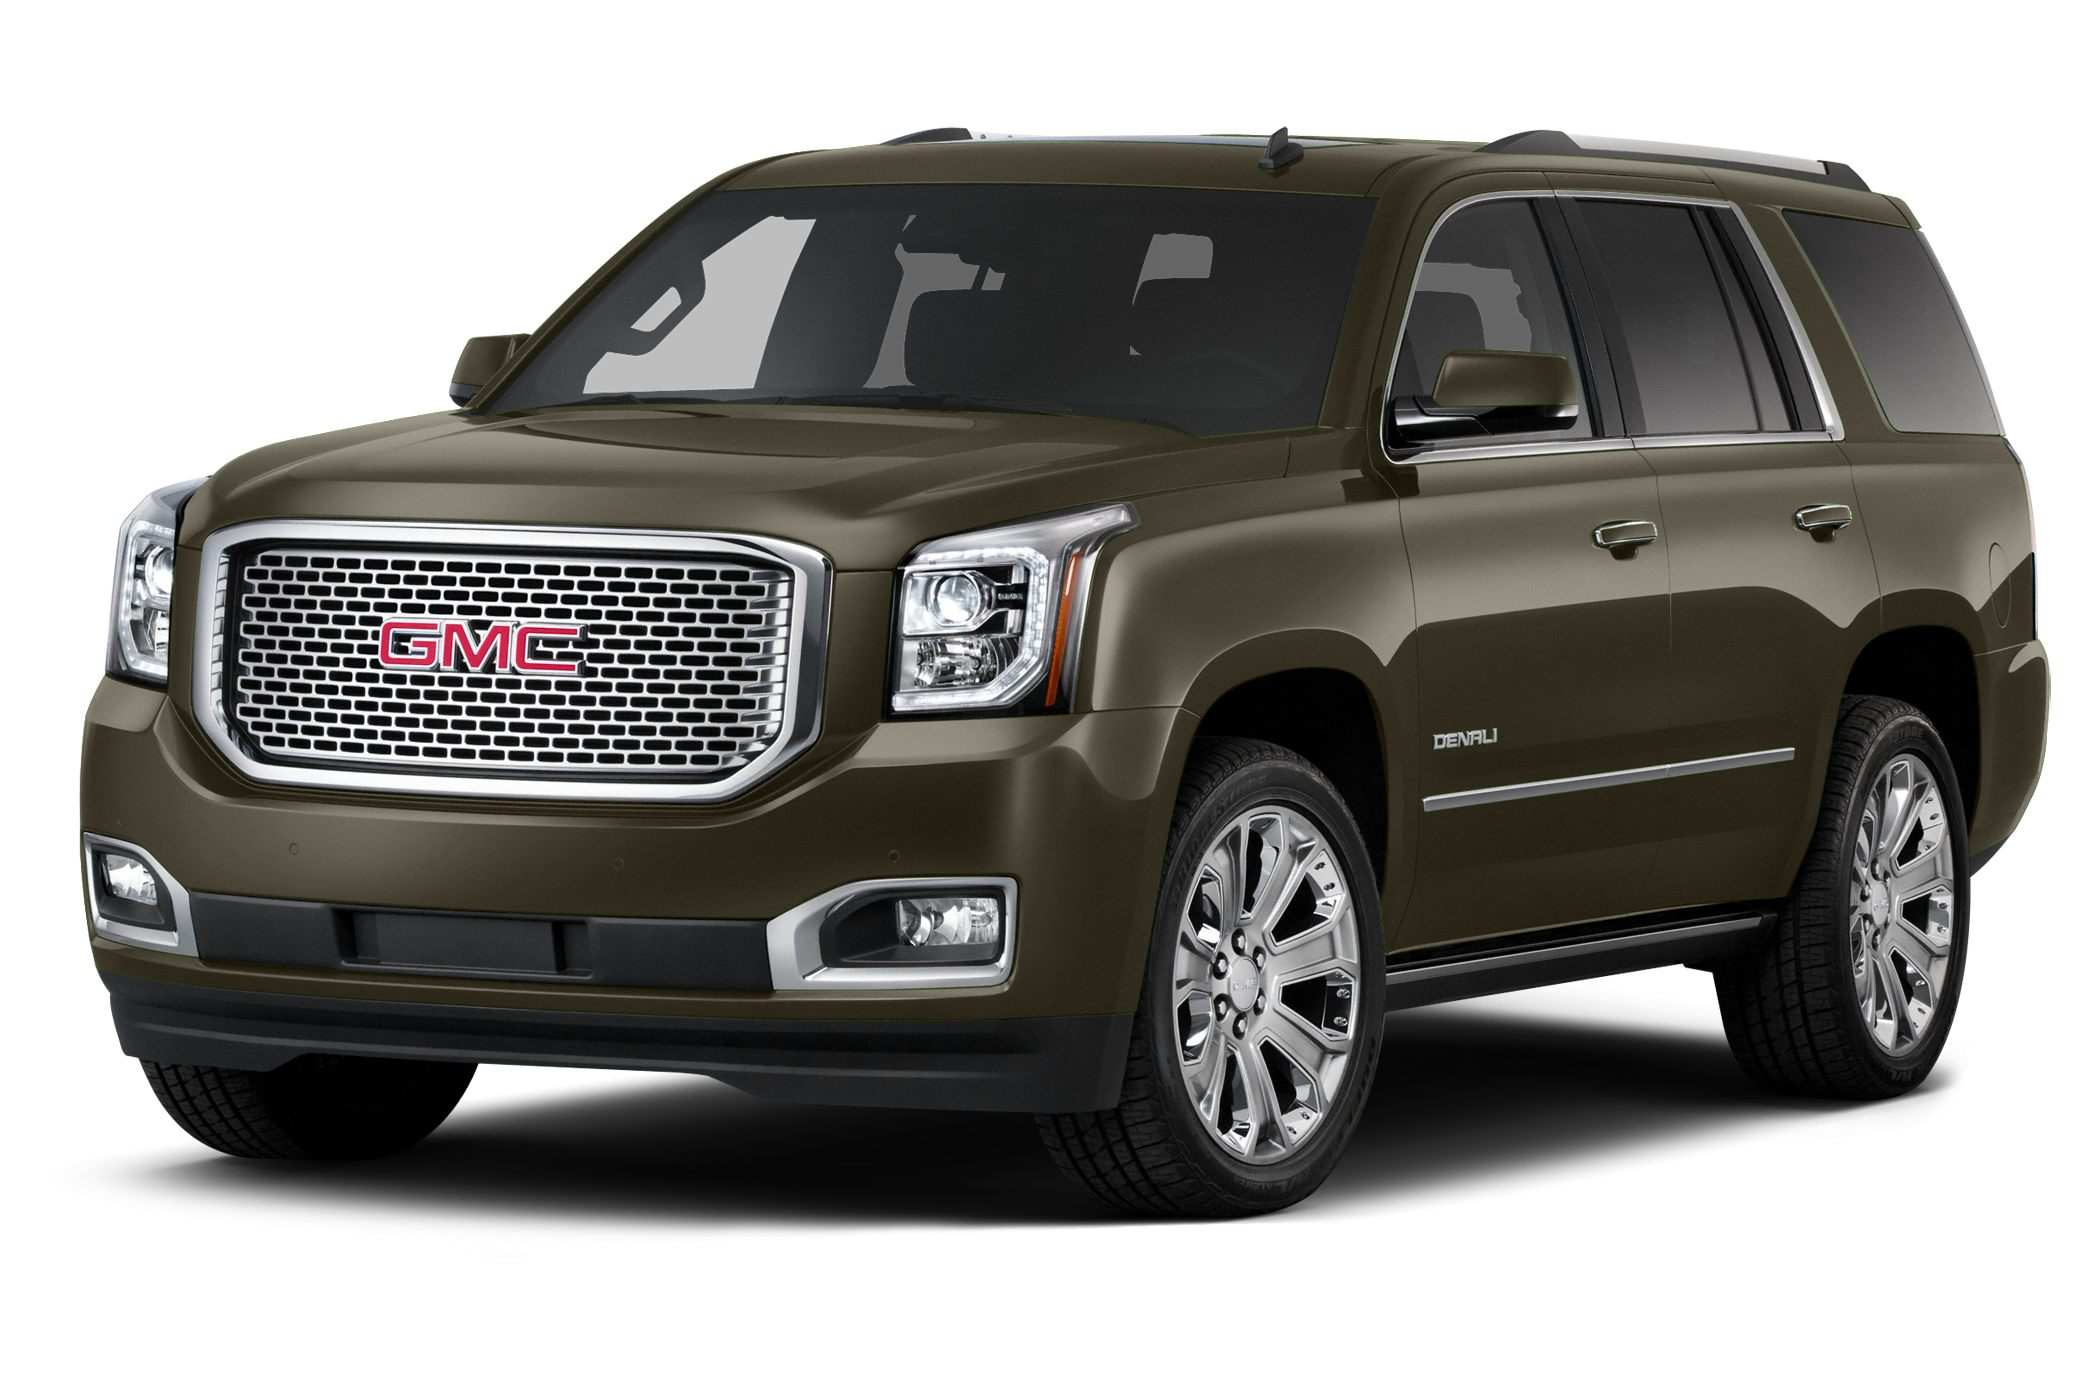 2015 GMC Yukon Denali SUV for sale in Leesburg for $68,960 with 3 miles.